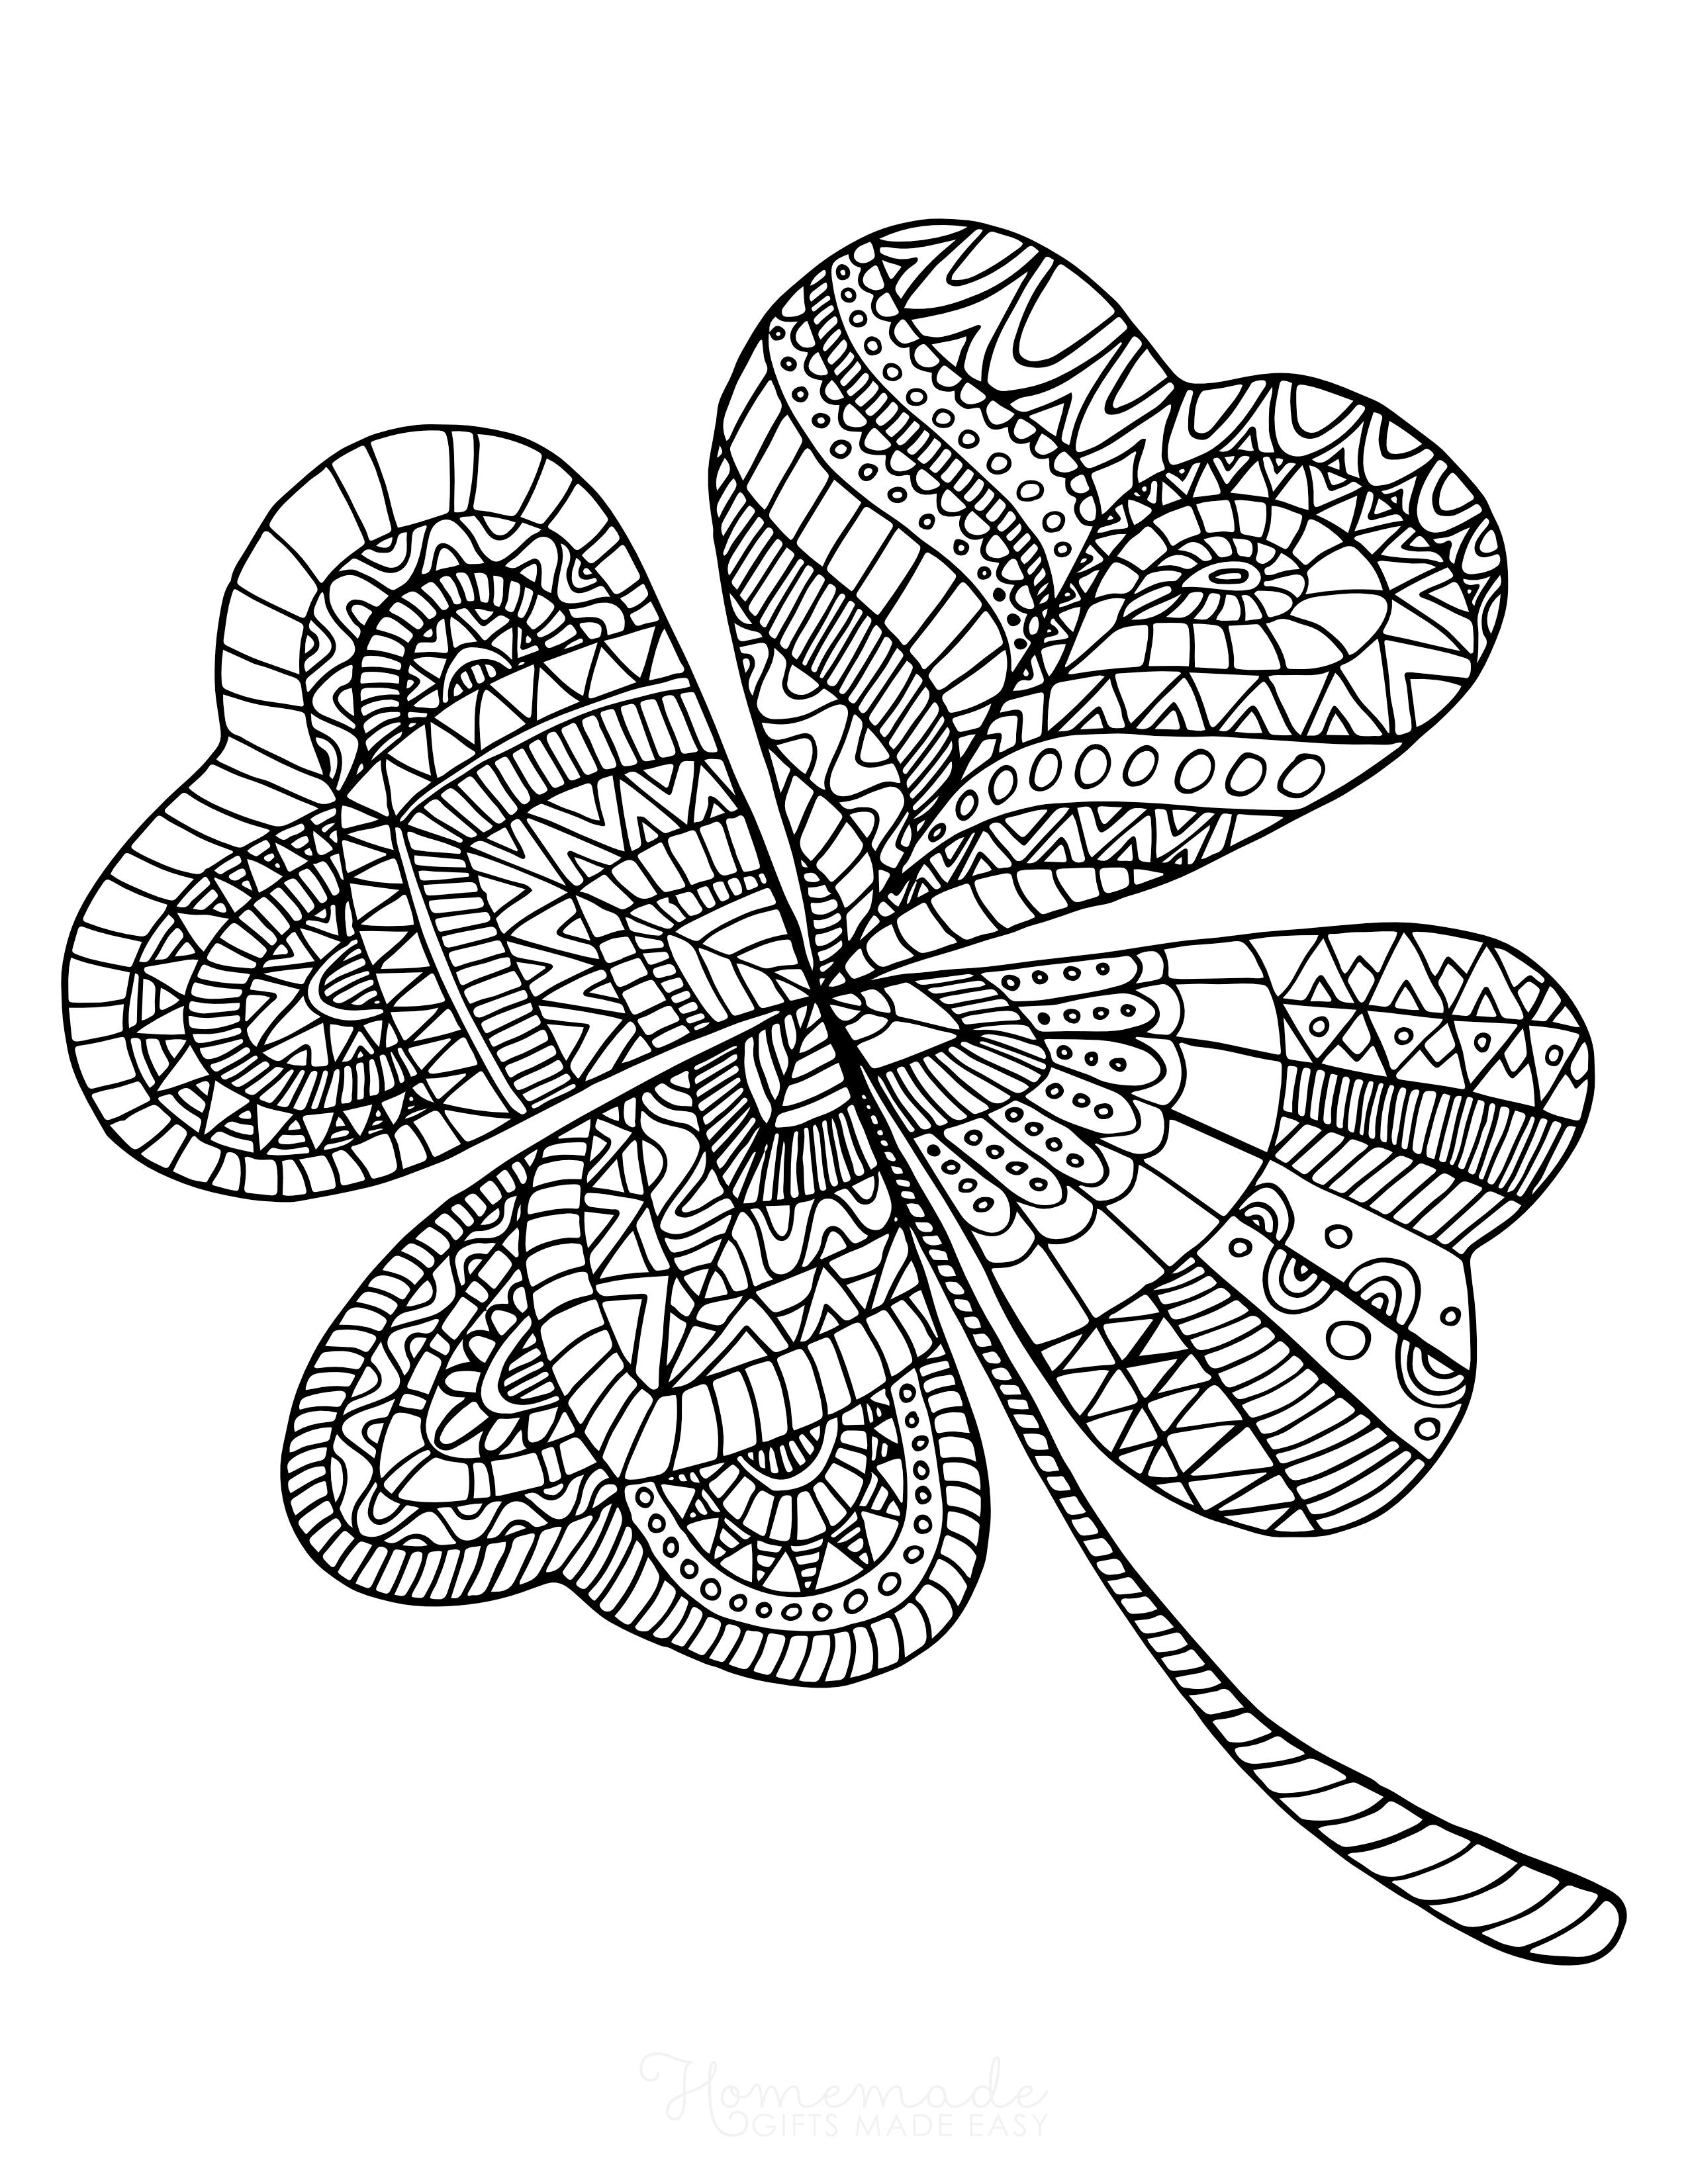 Shamrock for aldults Coloring Page